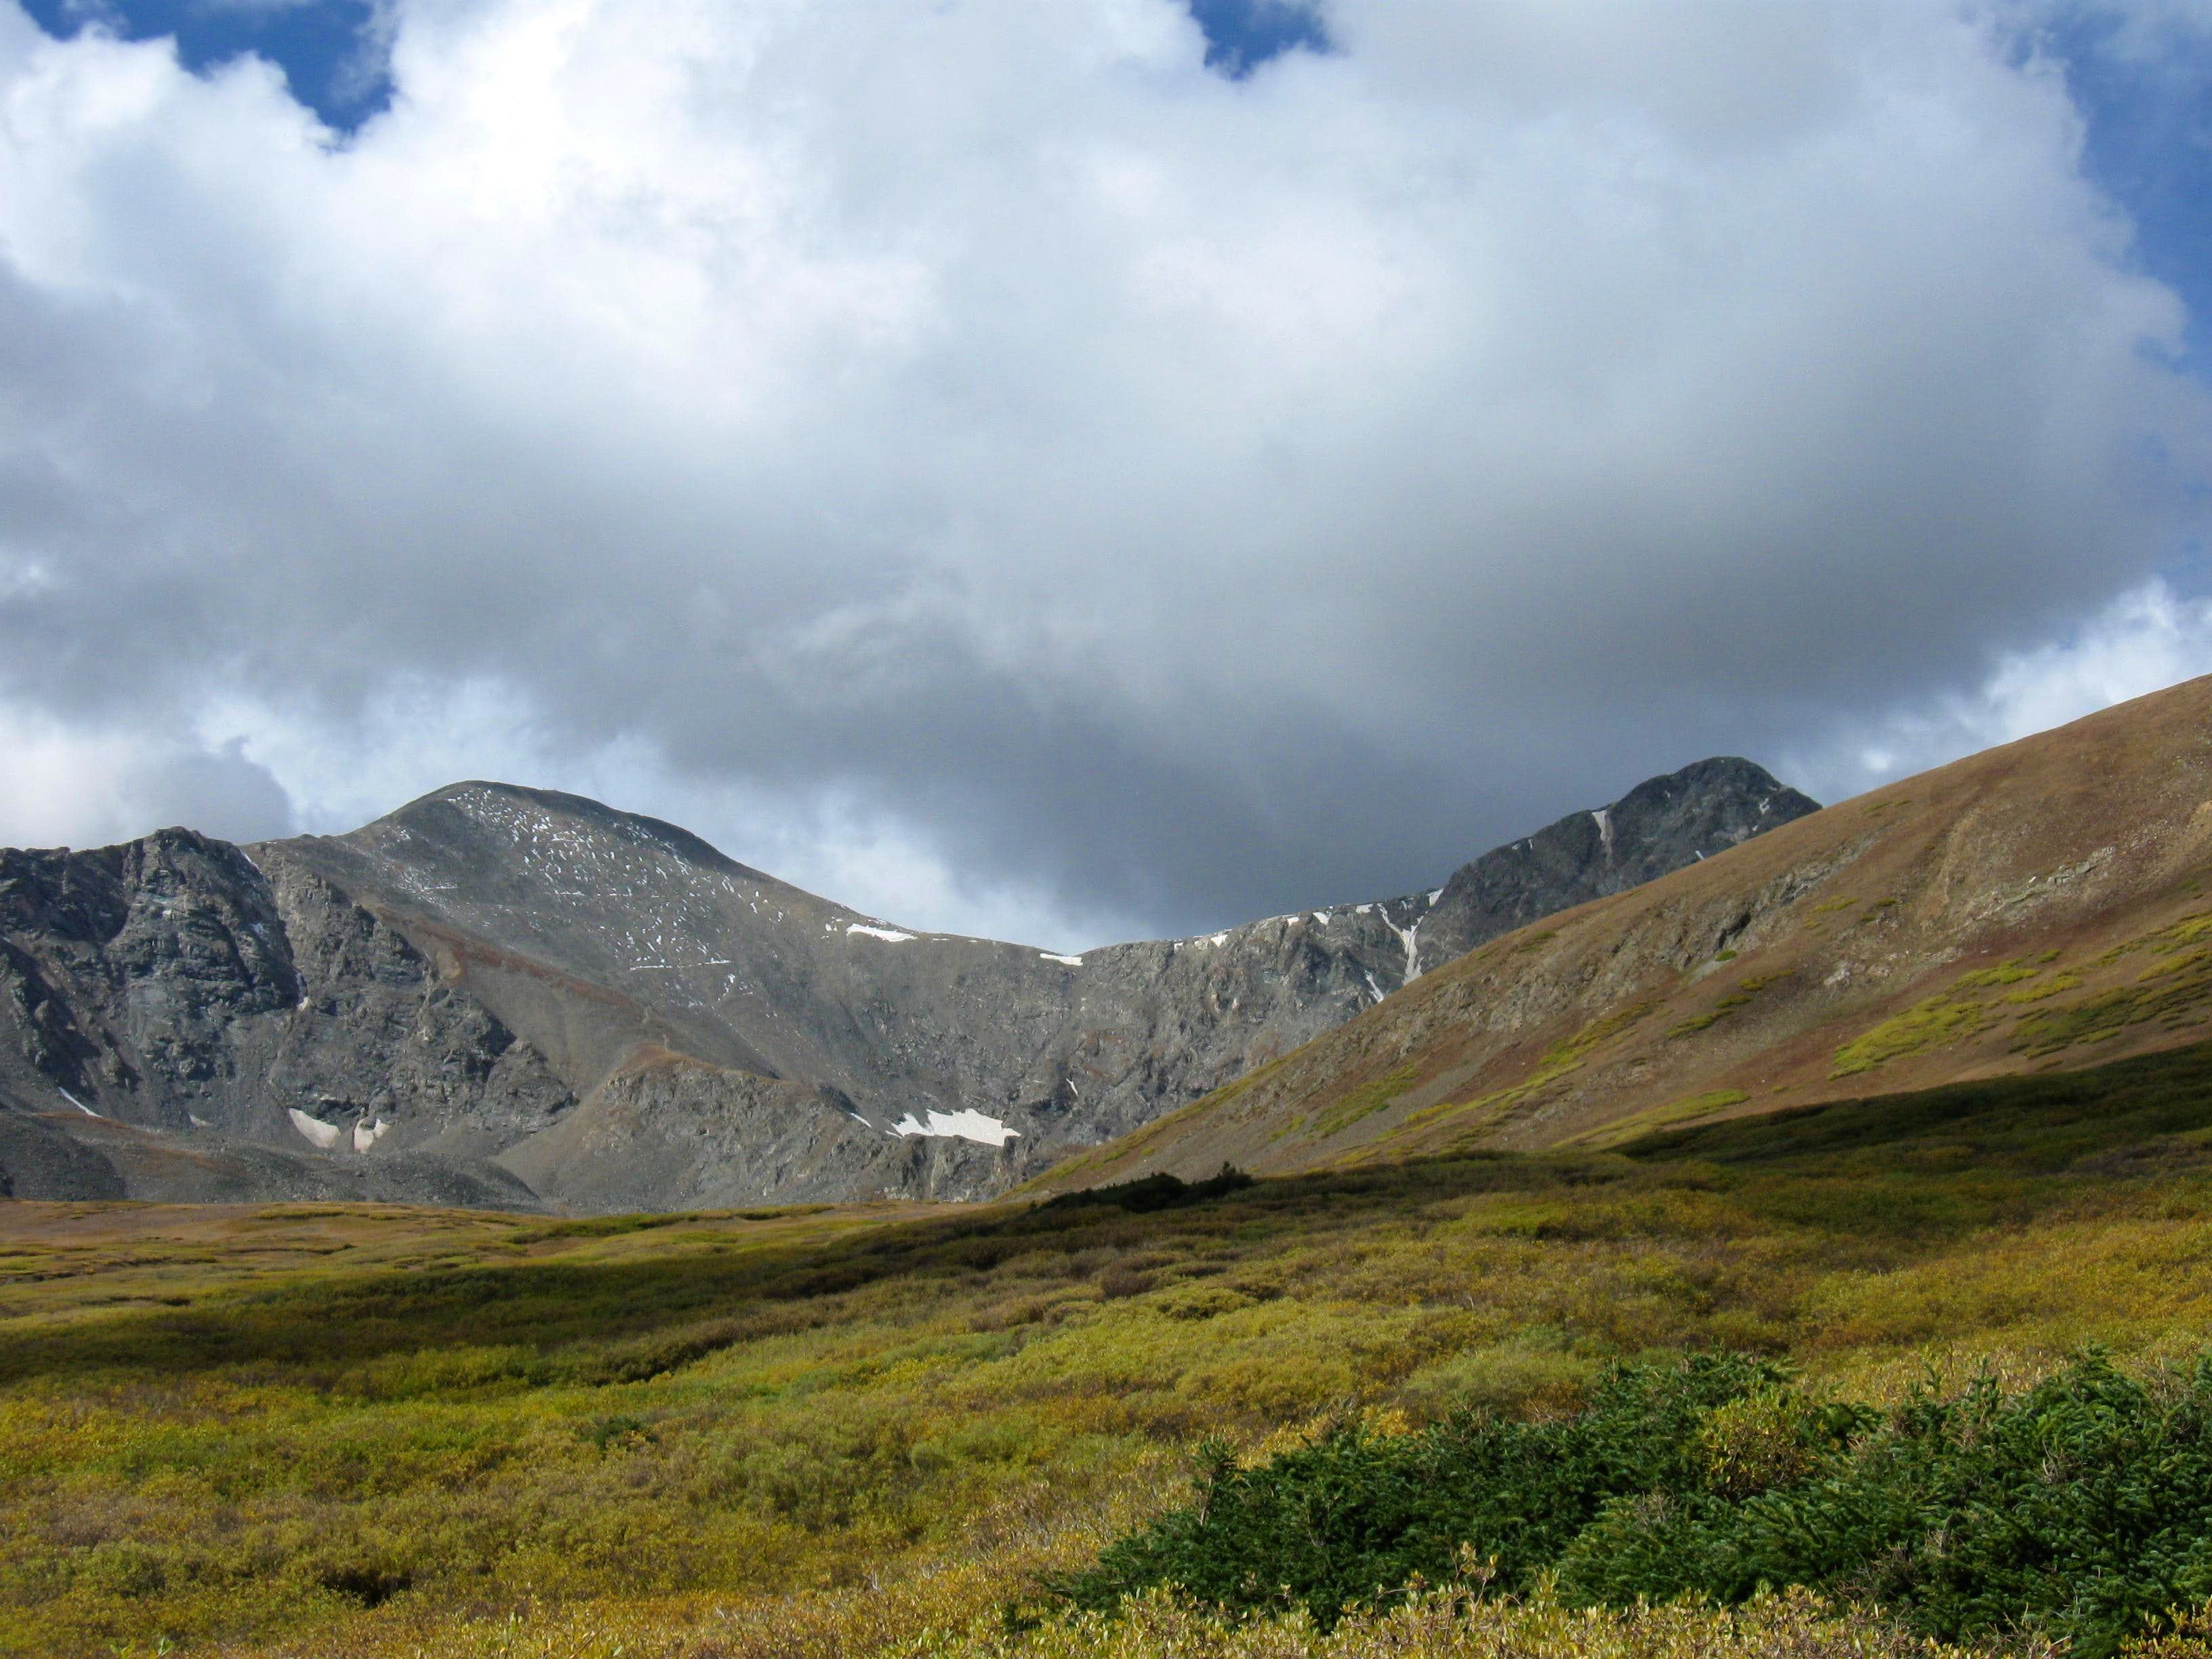 Torreys Peak and Grays Peak 9/20/09